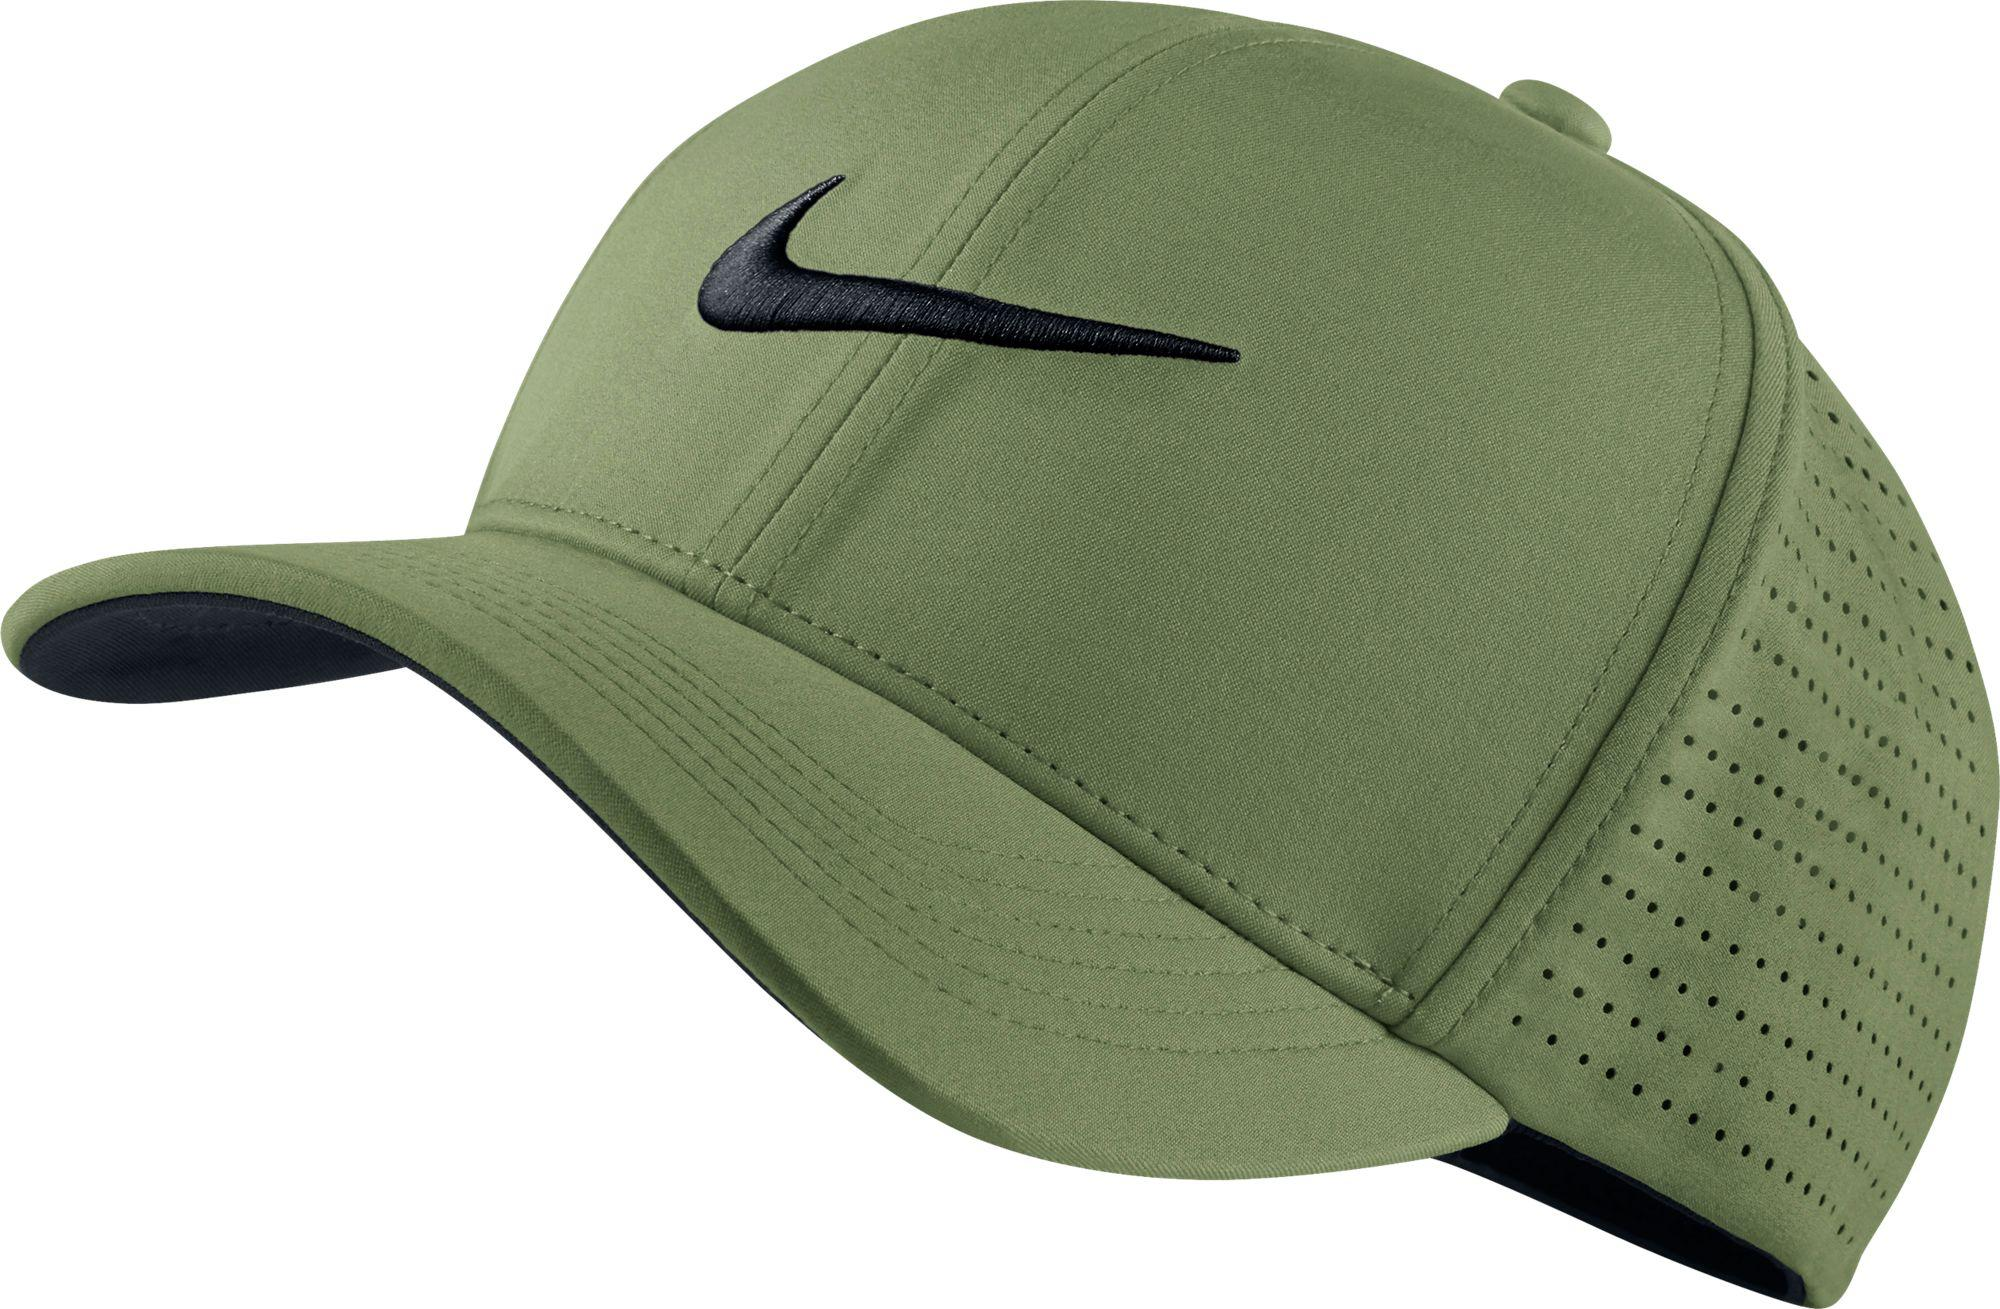 7db483c34993 Lyst - Nike Classic99 Perforated Golf Hat in Green for Men